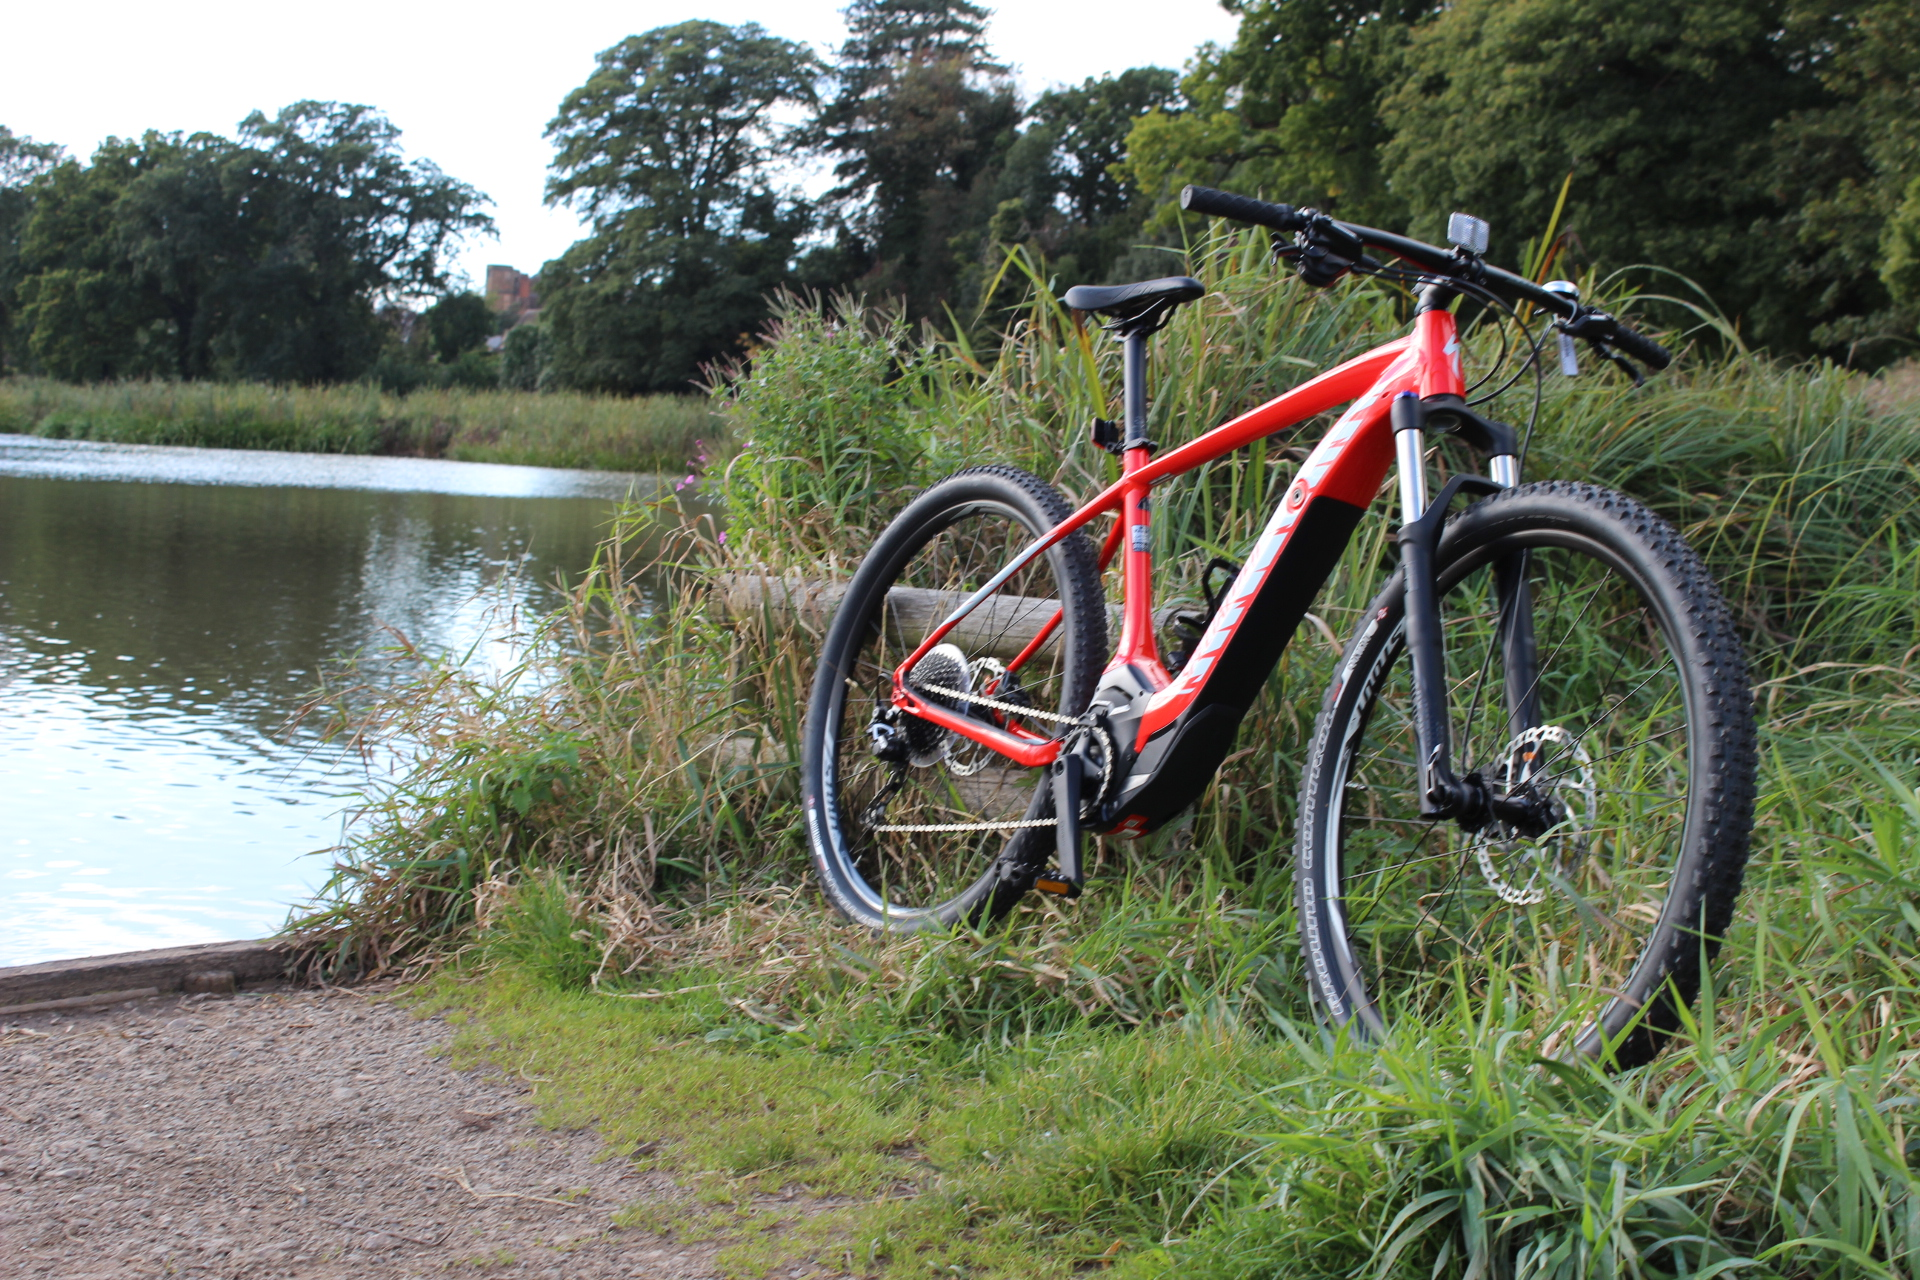 A bike resting against nature near a waterway